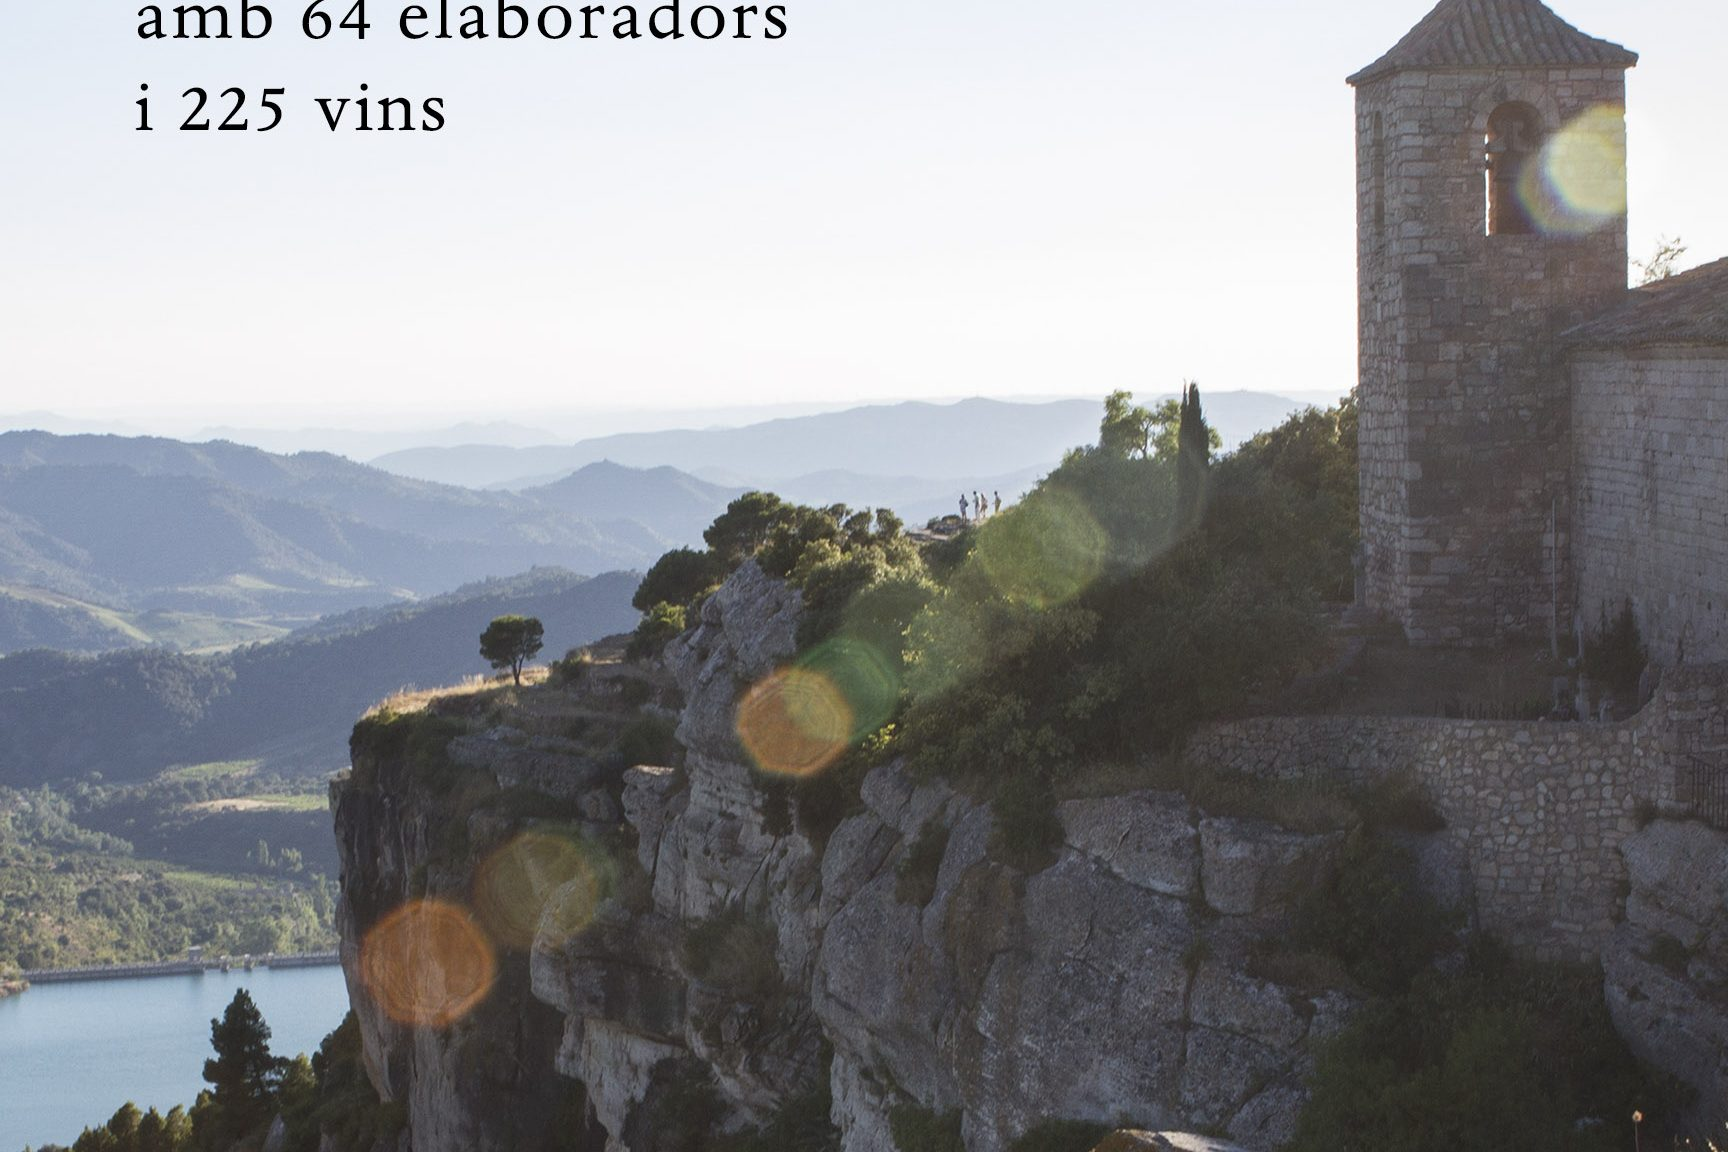 Vinologue Montsant, review on the website of Jancis Robinson